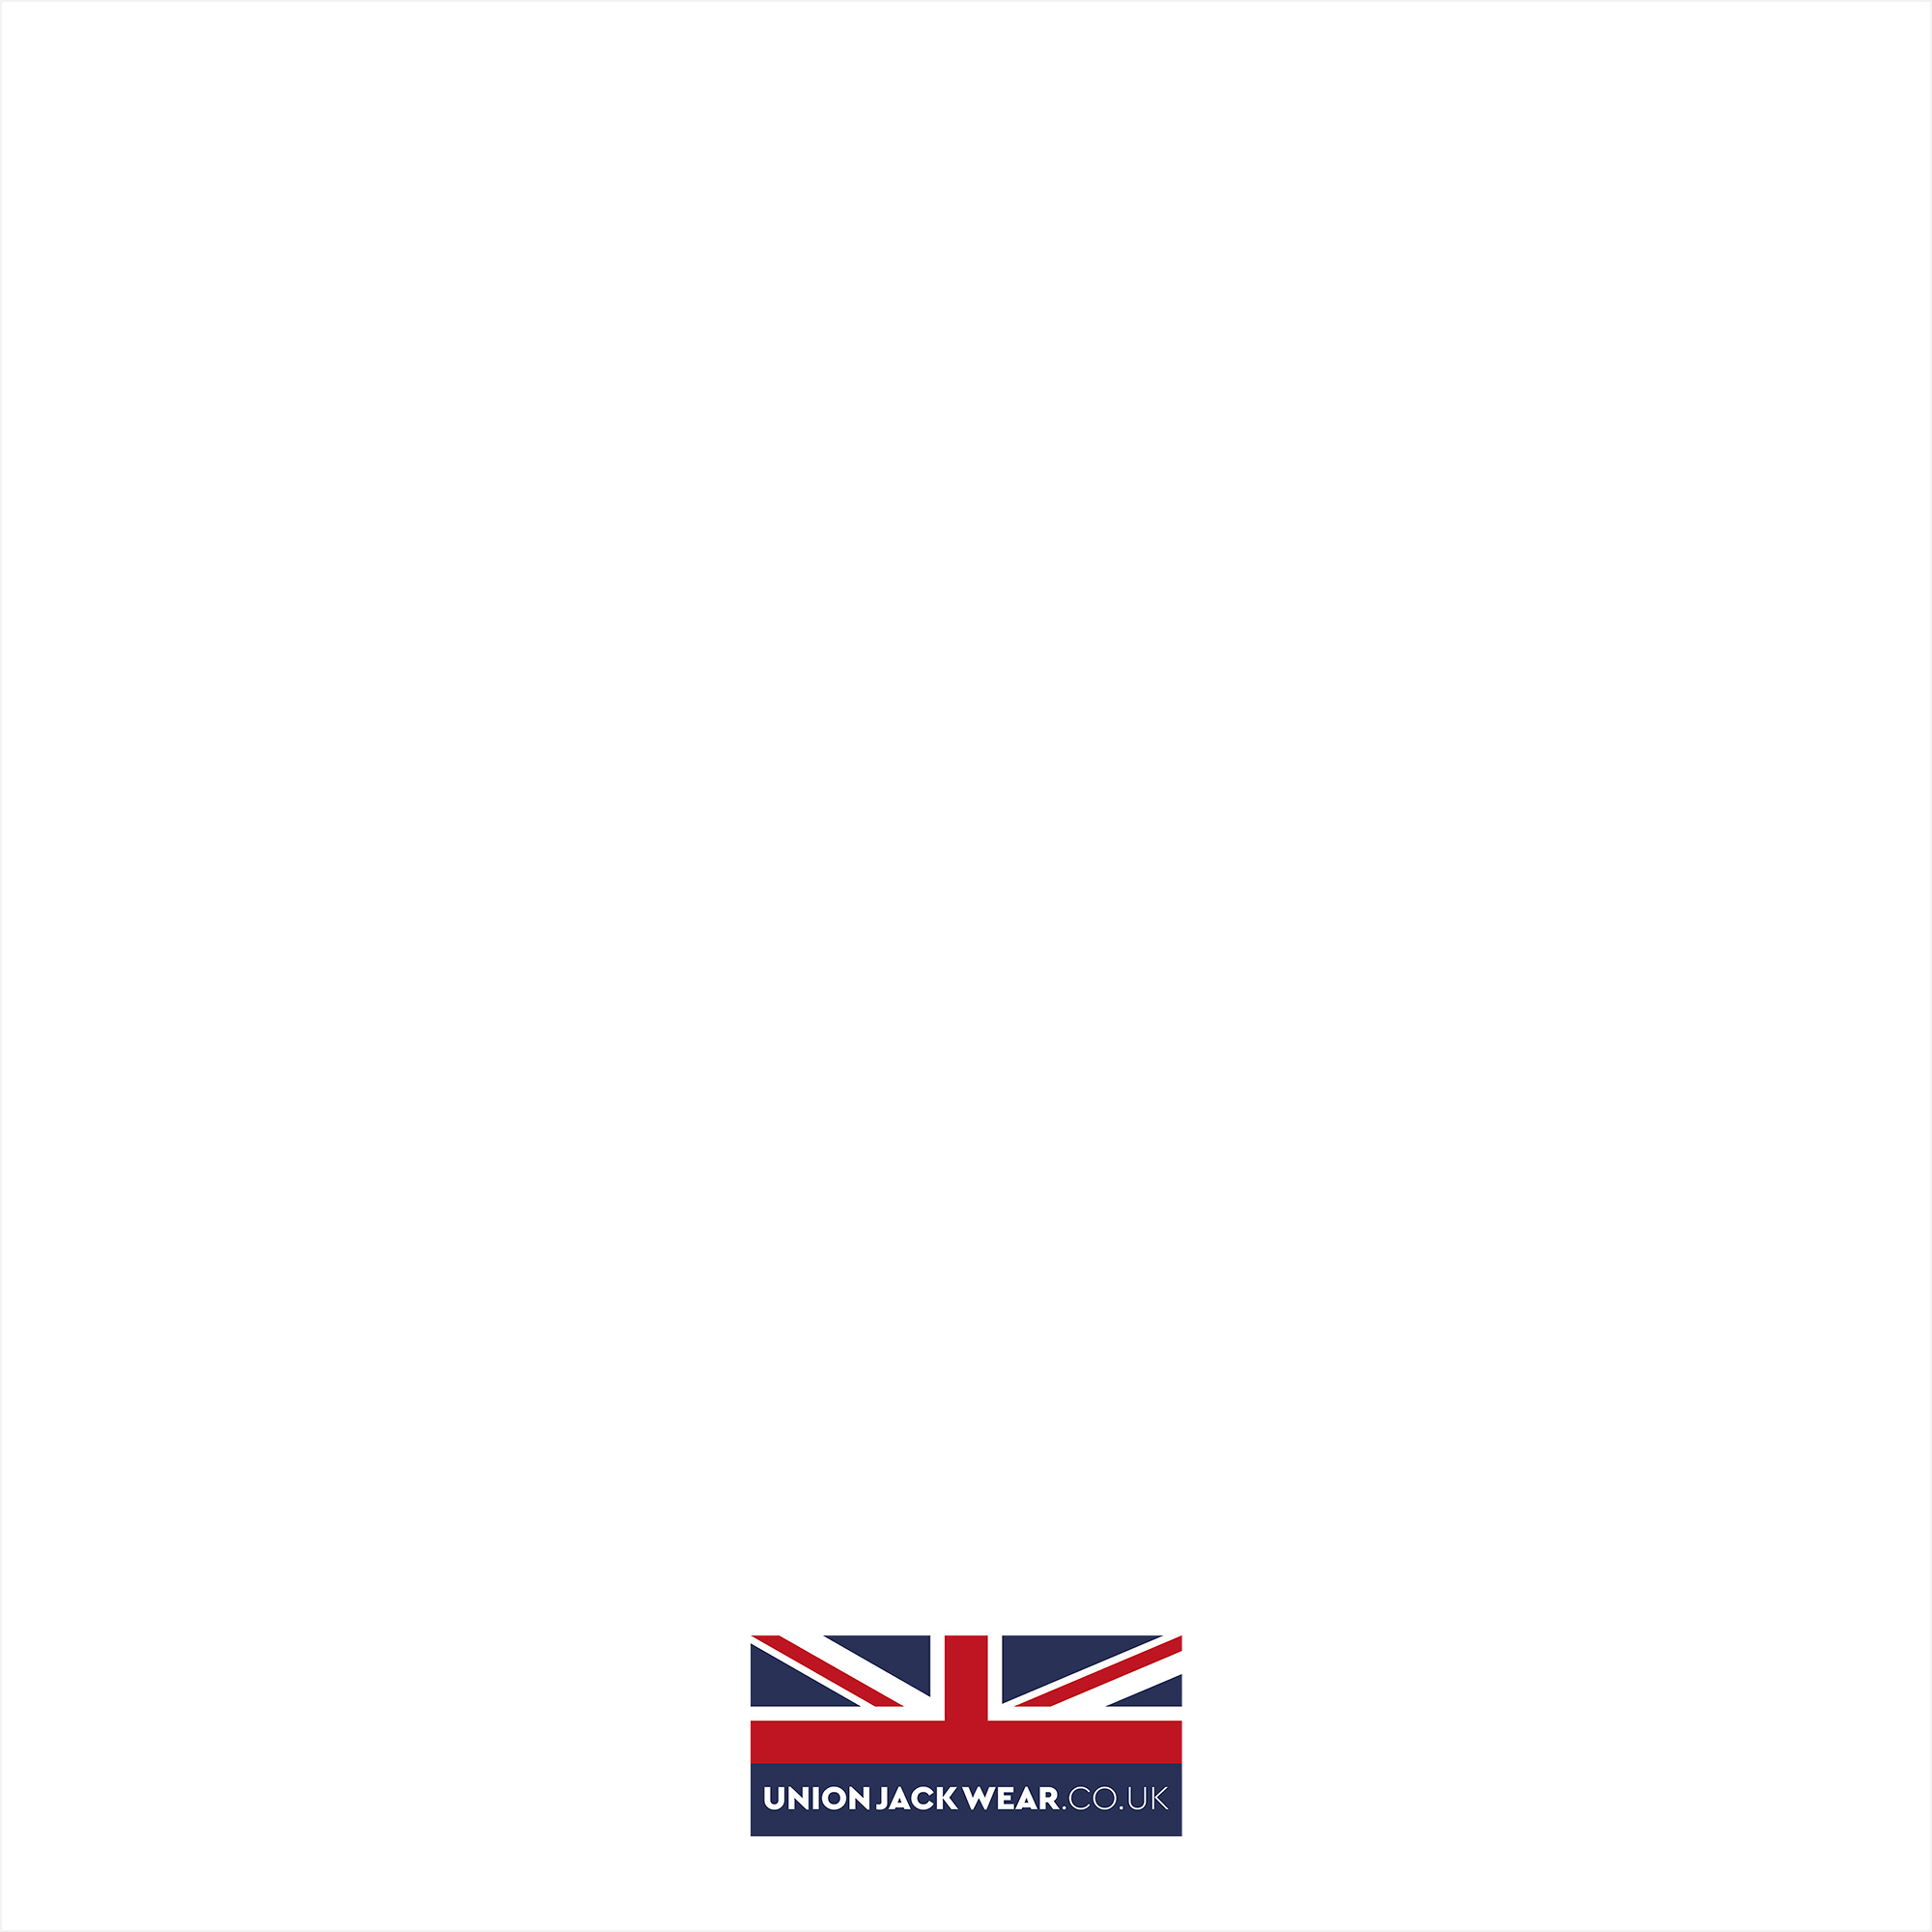 Union Jack Wear Two Gay Pride Rainbow Hand Flags with 2 ft wooden pole